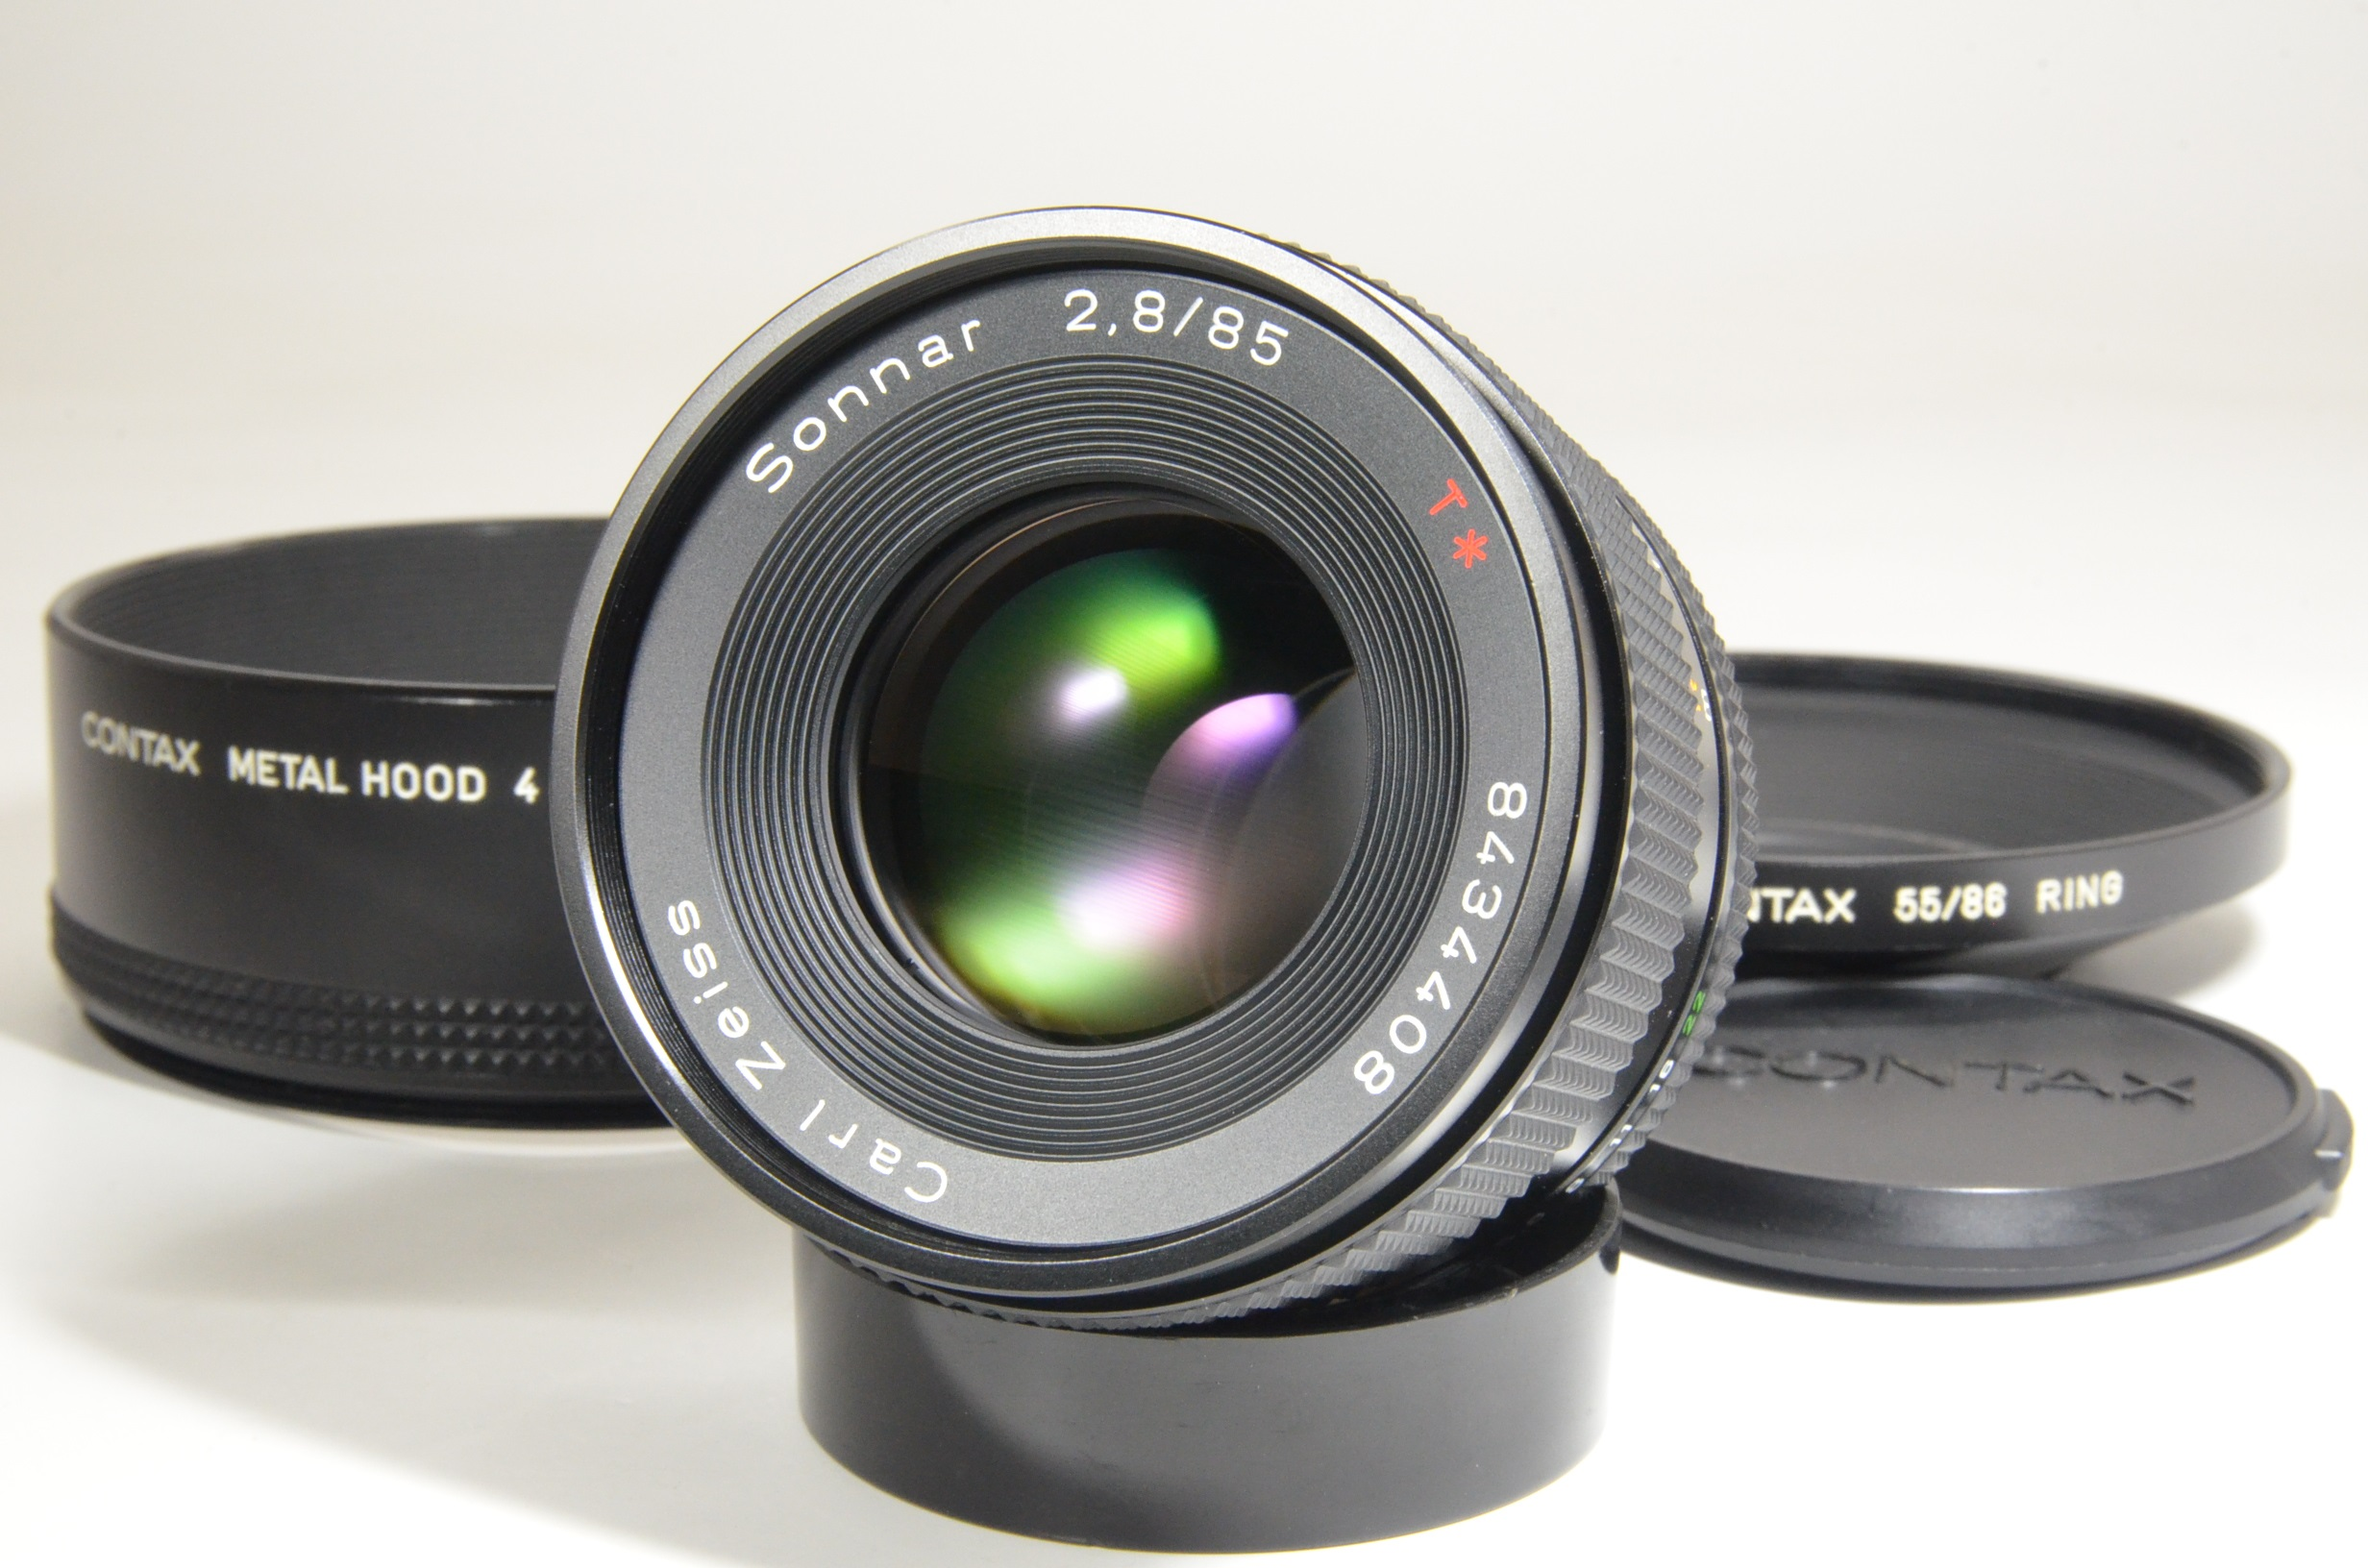 contax carl zeiss sonnar t* 85mm f2.8 mmg with metal hood 4